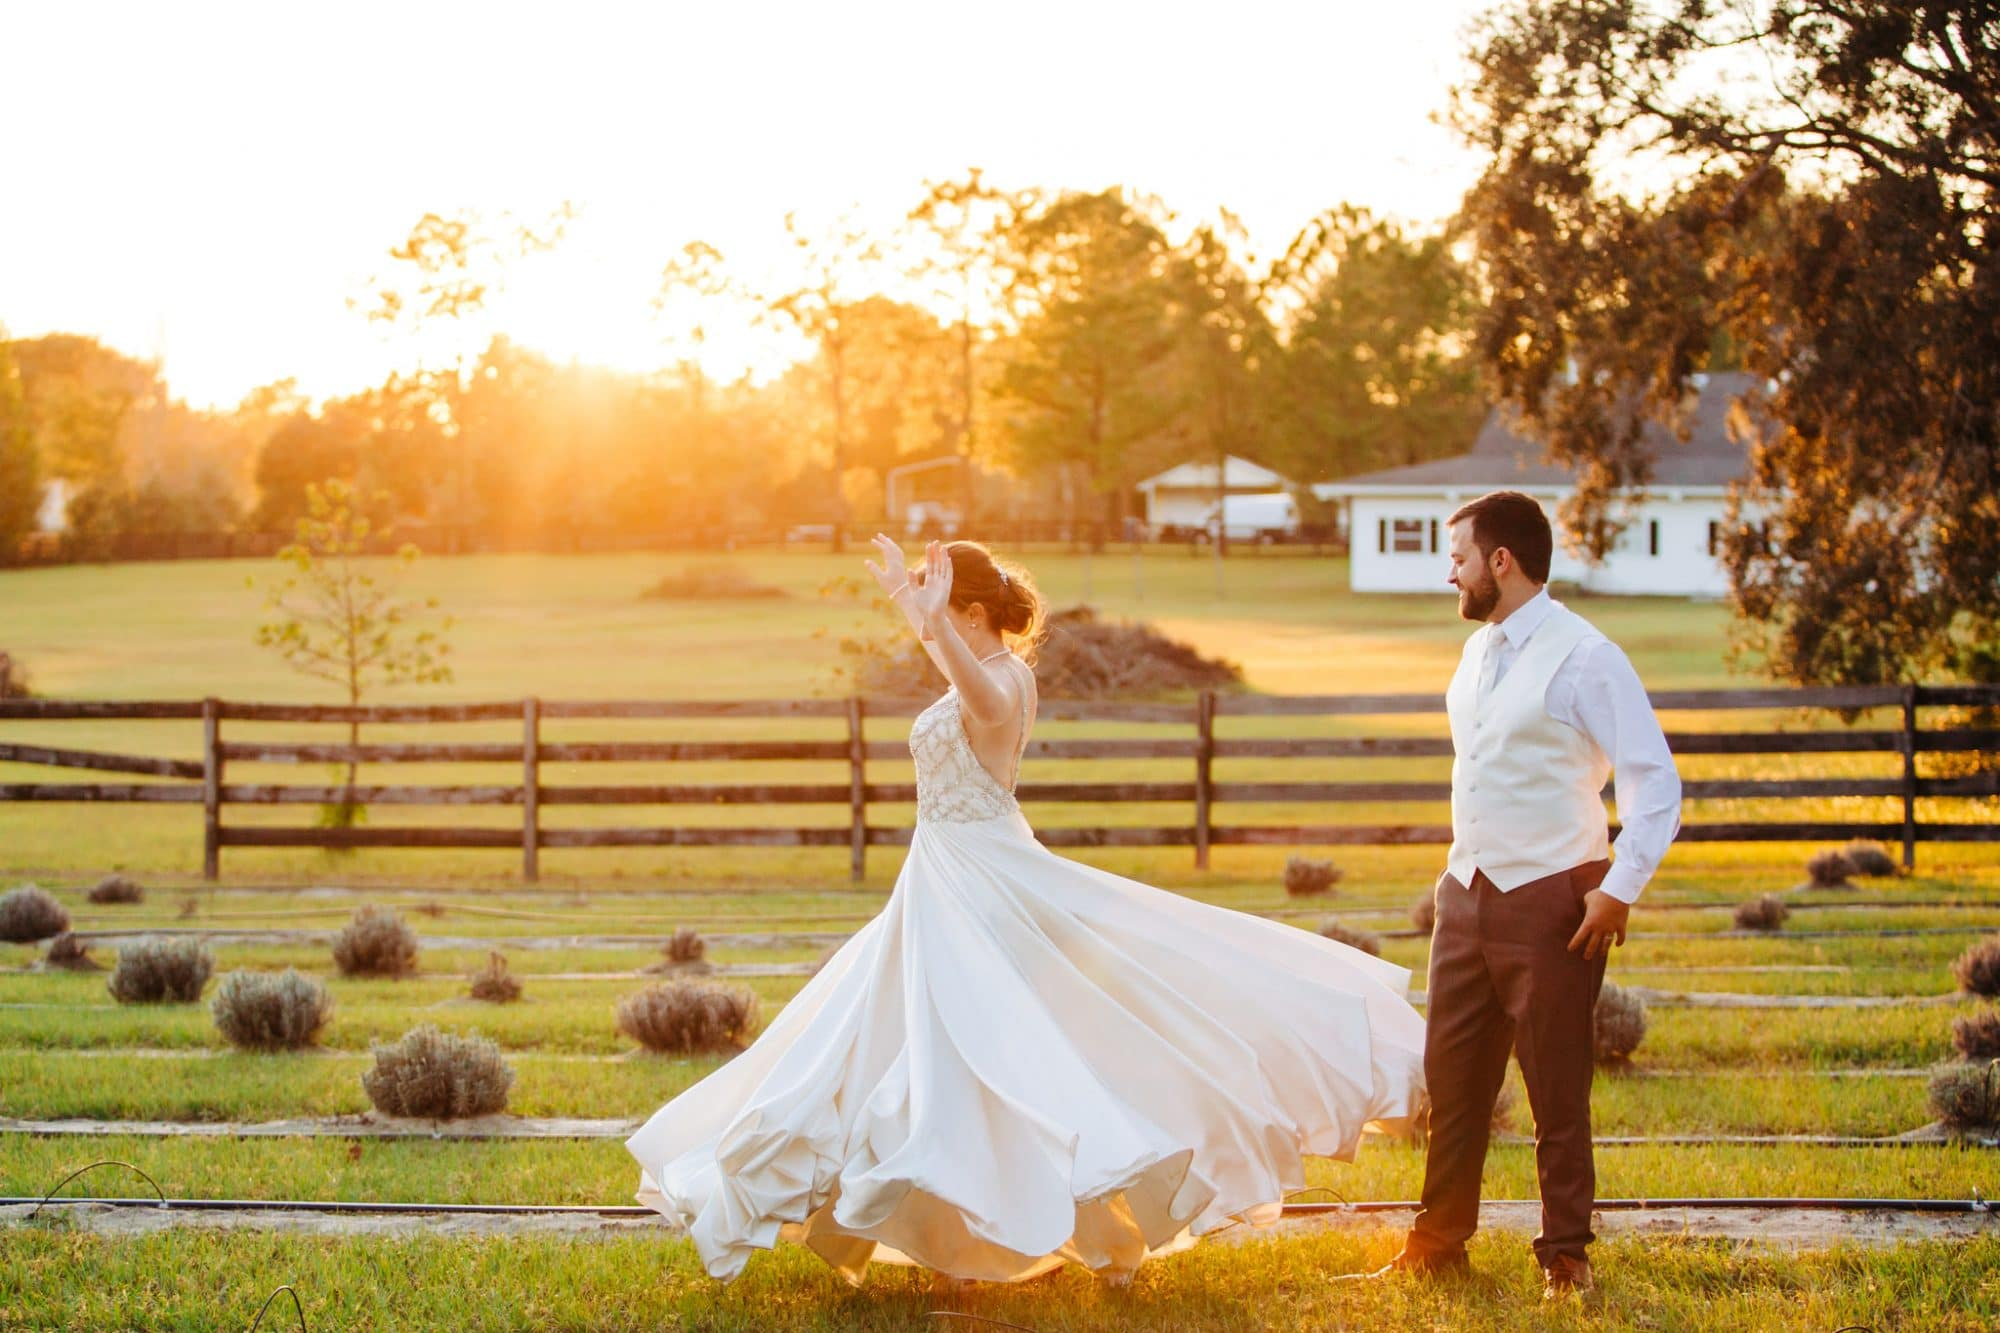 Live Love Laugh Events - groom watching bride twirl in open field